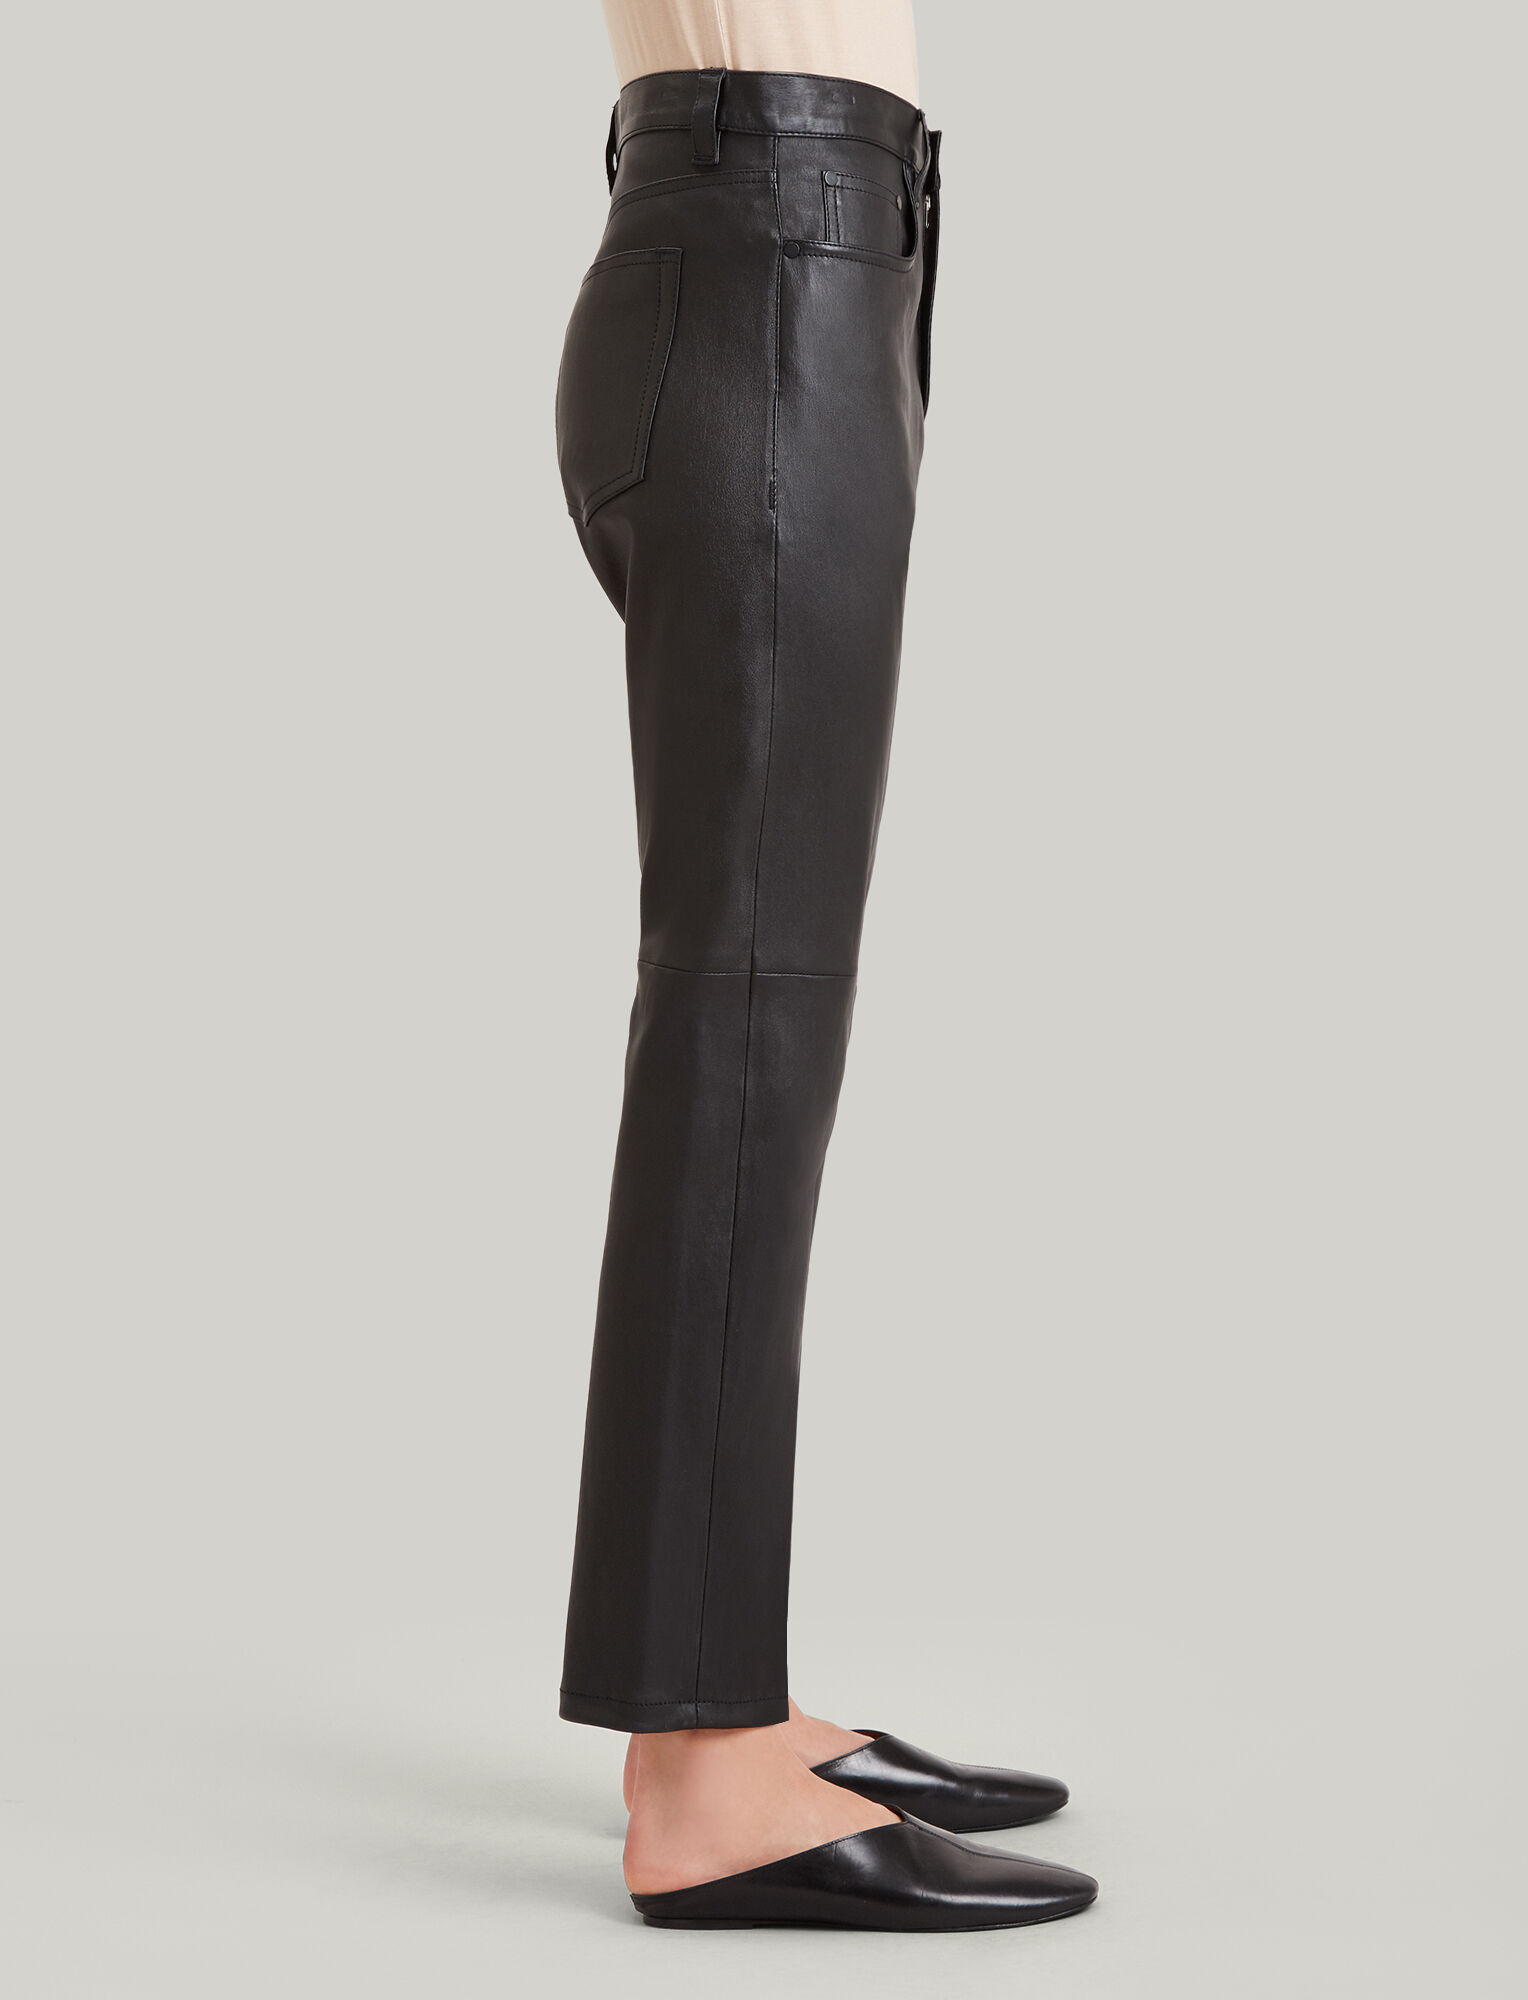 Joseph, Kemp Stretch Leather Trousers, in BLACK